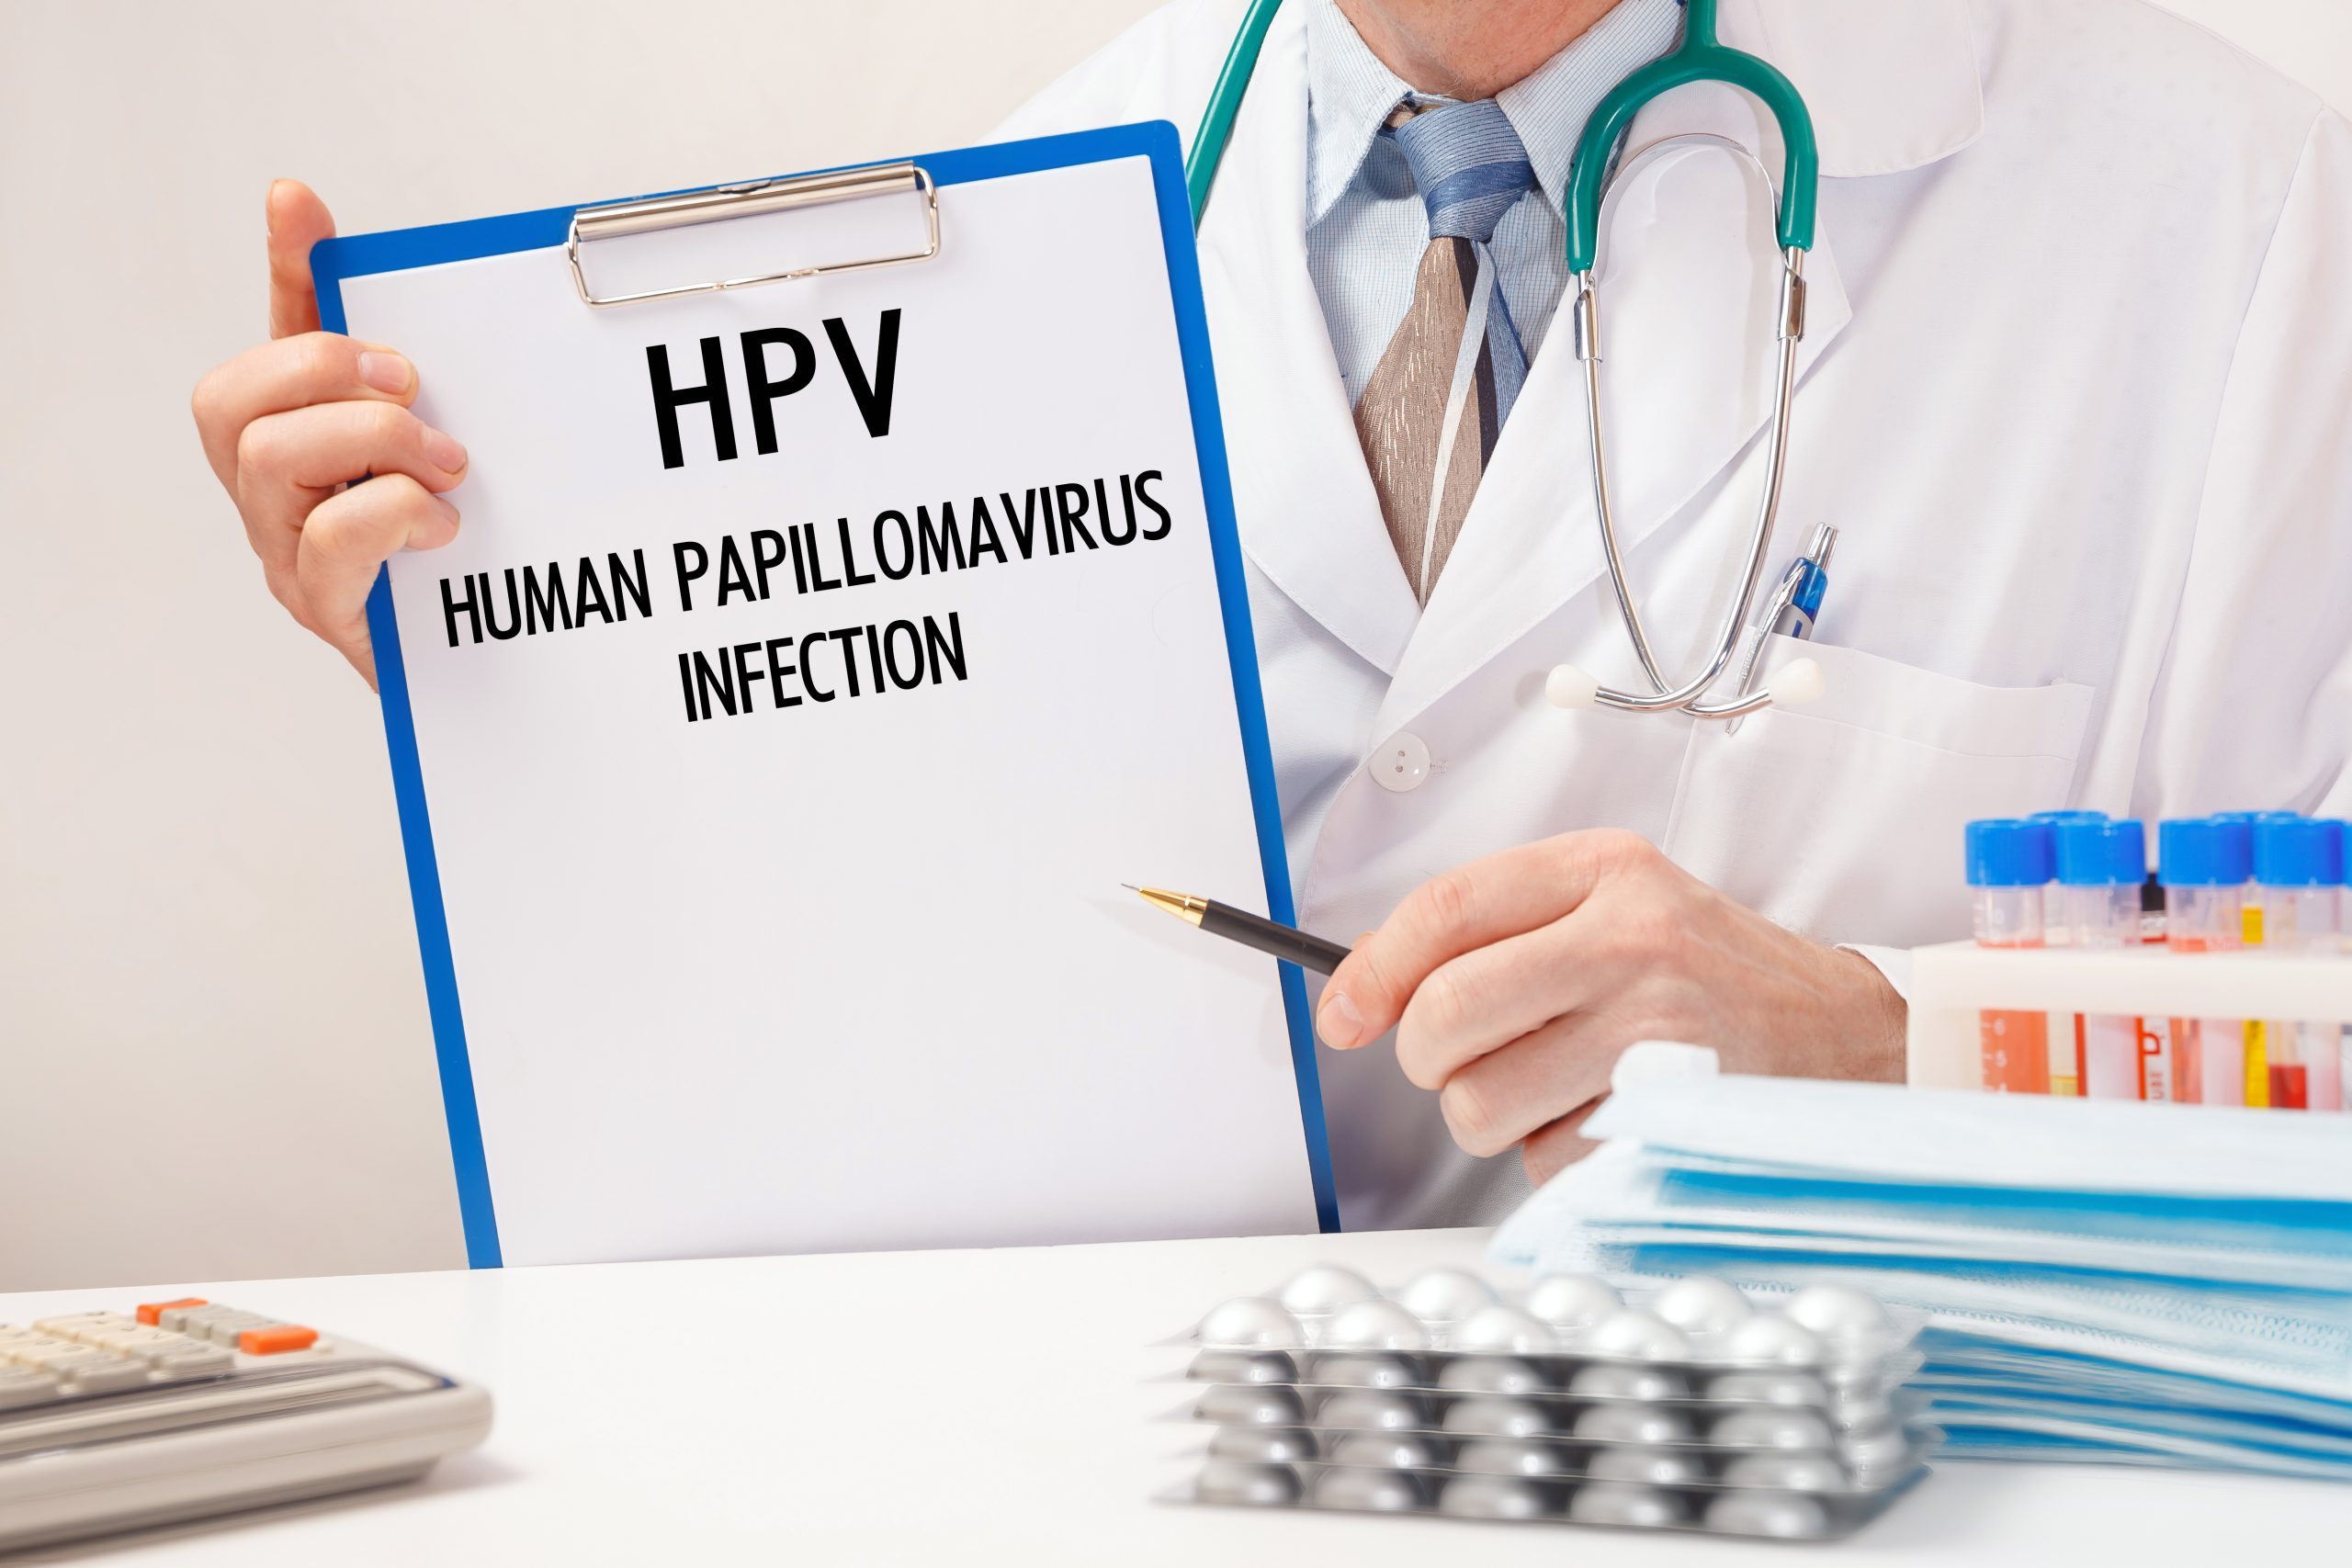 HPV infection: A well-established cause of certain cancers